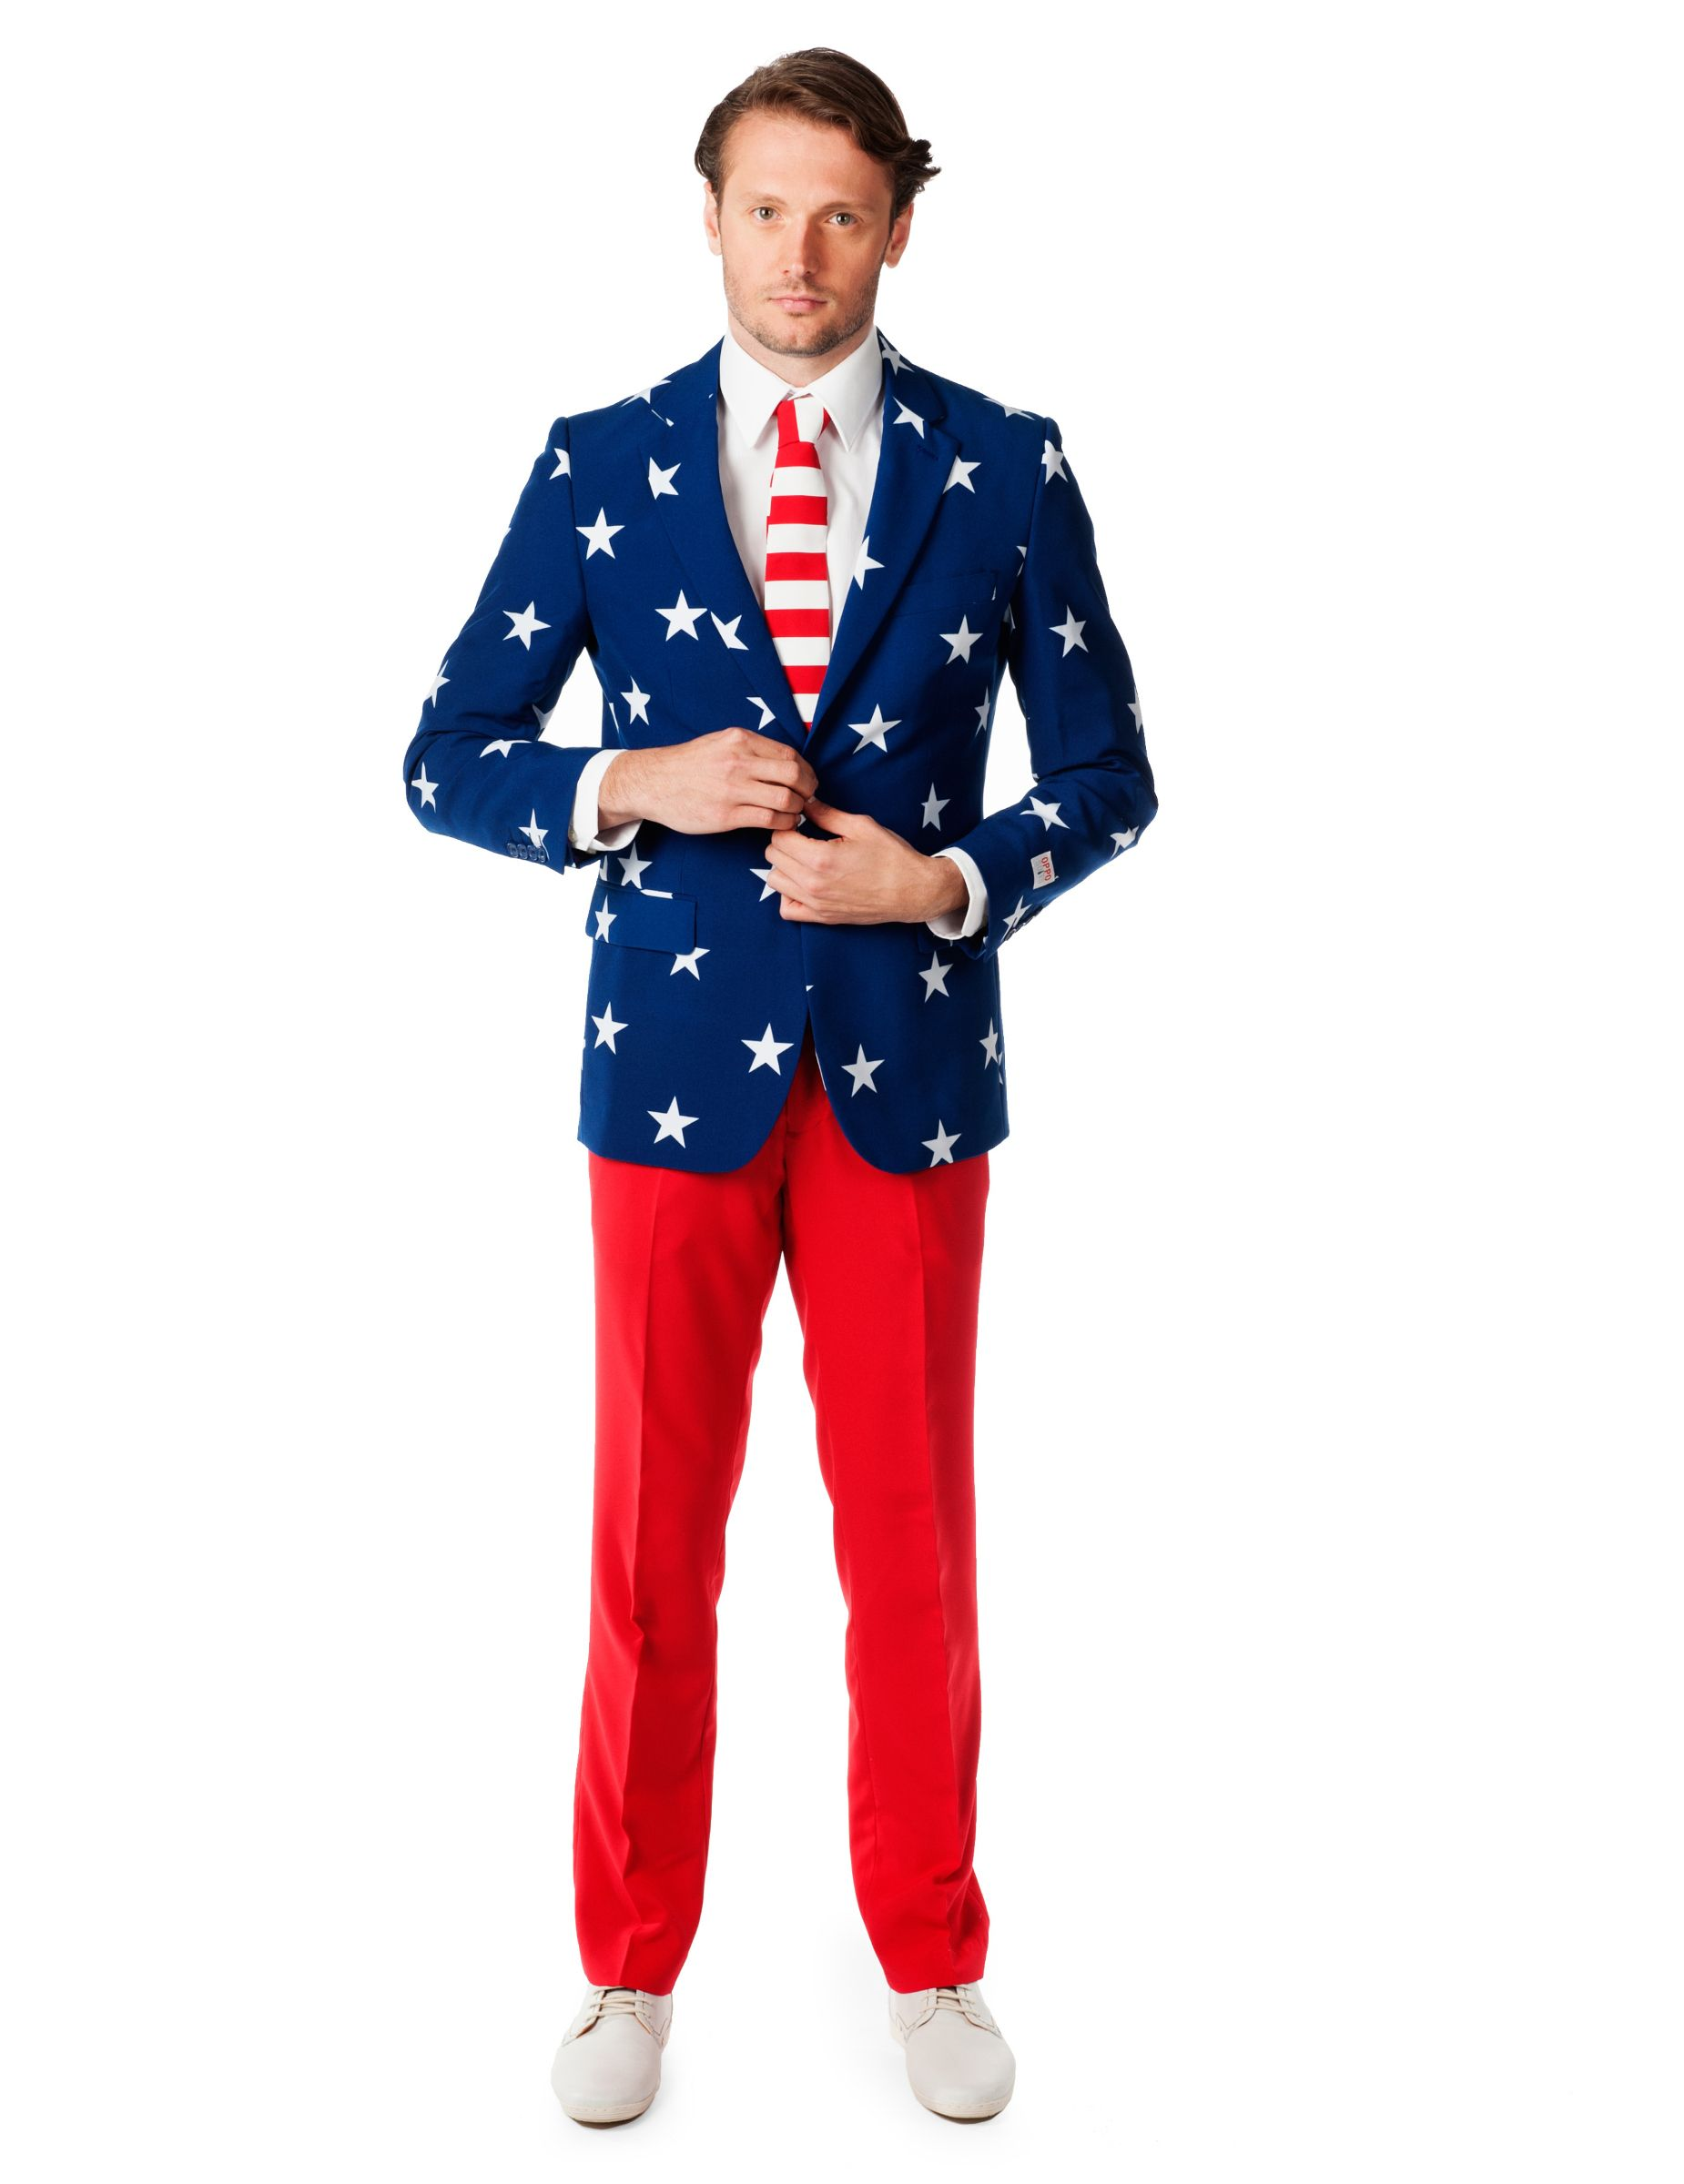 USA Opposuits™ costume for men | Red pants, Fit star, Party